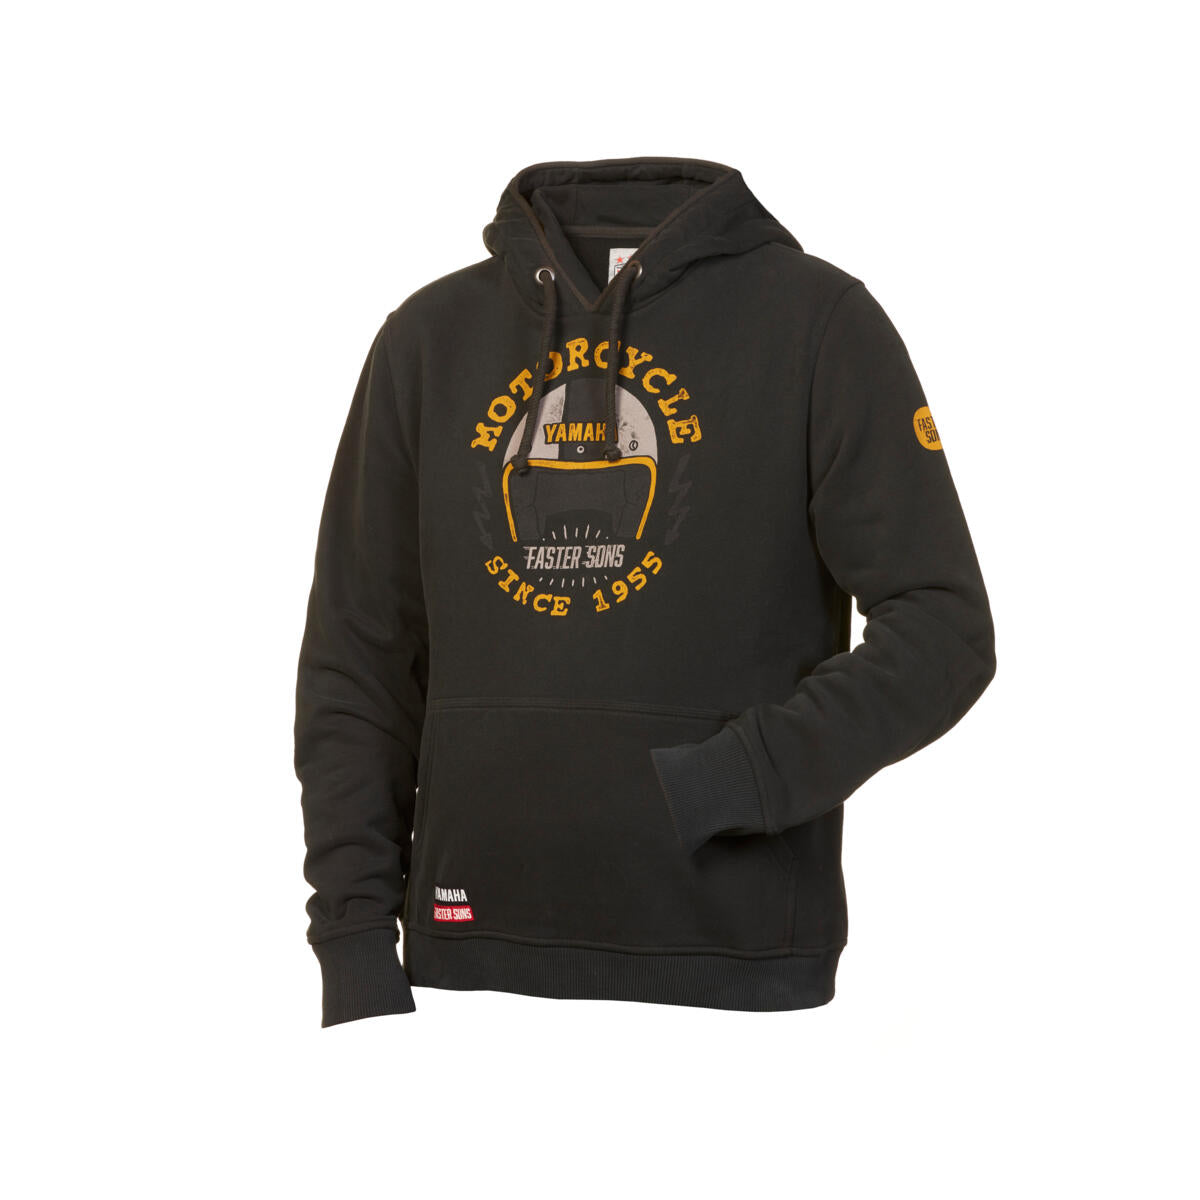 Faster Sons Male Hoody Ackerly